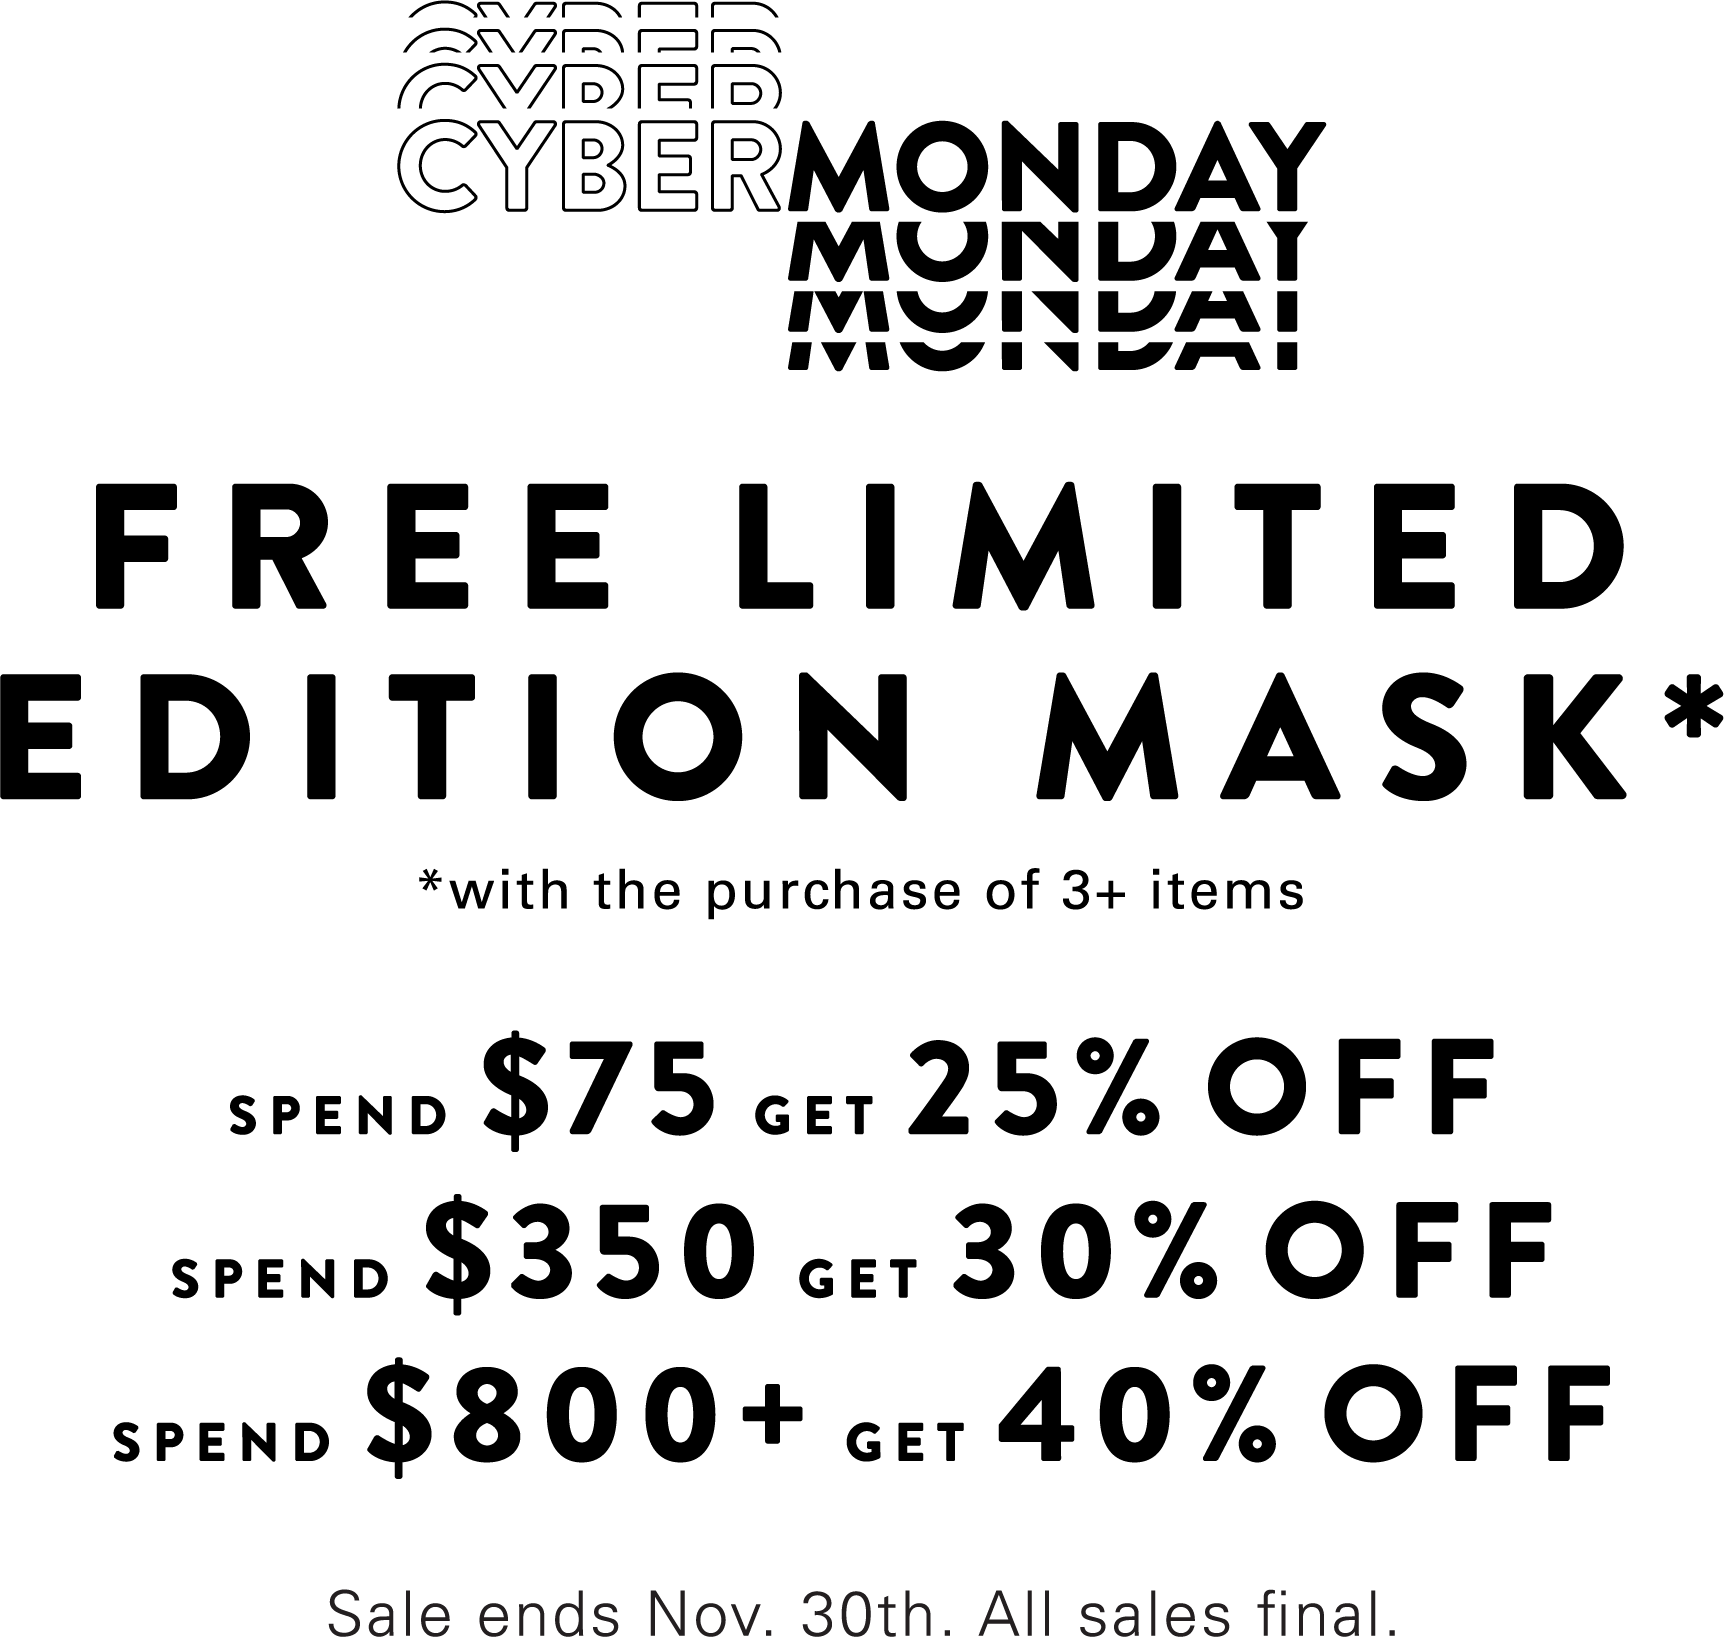 Cyber Monday | FREE LIMITED EDITION MASK* *with the purchase of 3+ items | SPEND $75 GET 25% OFF | SPEND $350 GET 30% OFF | SPEND $800+ GET 40% OFF